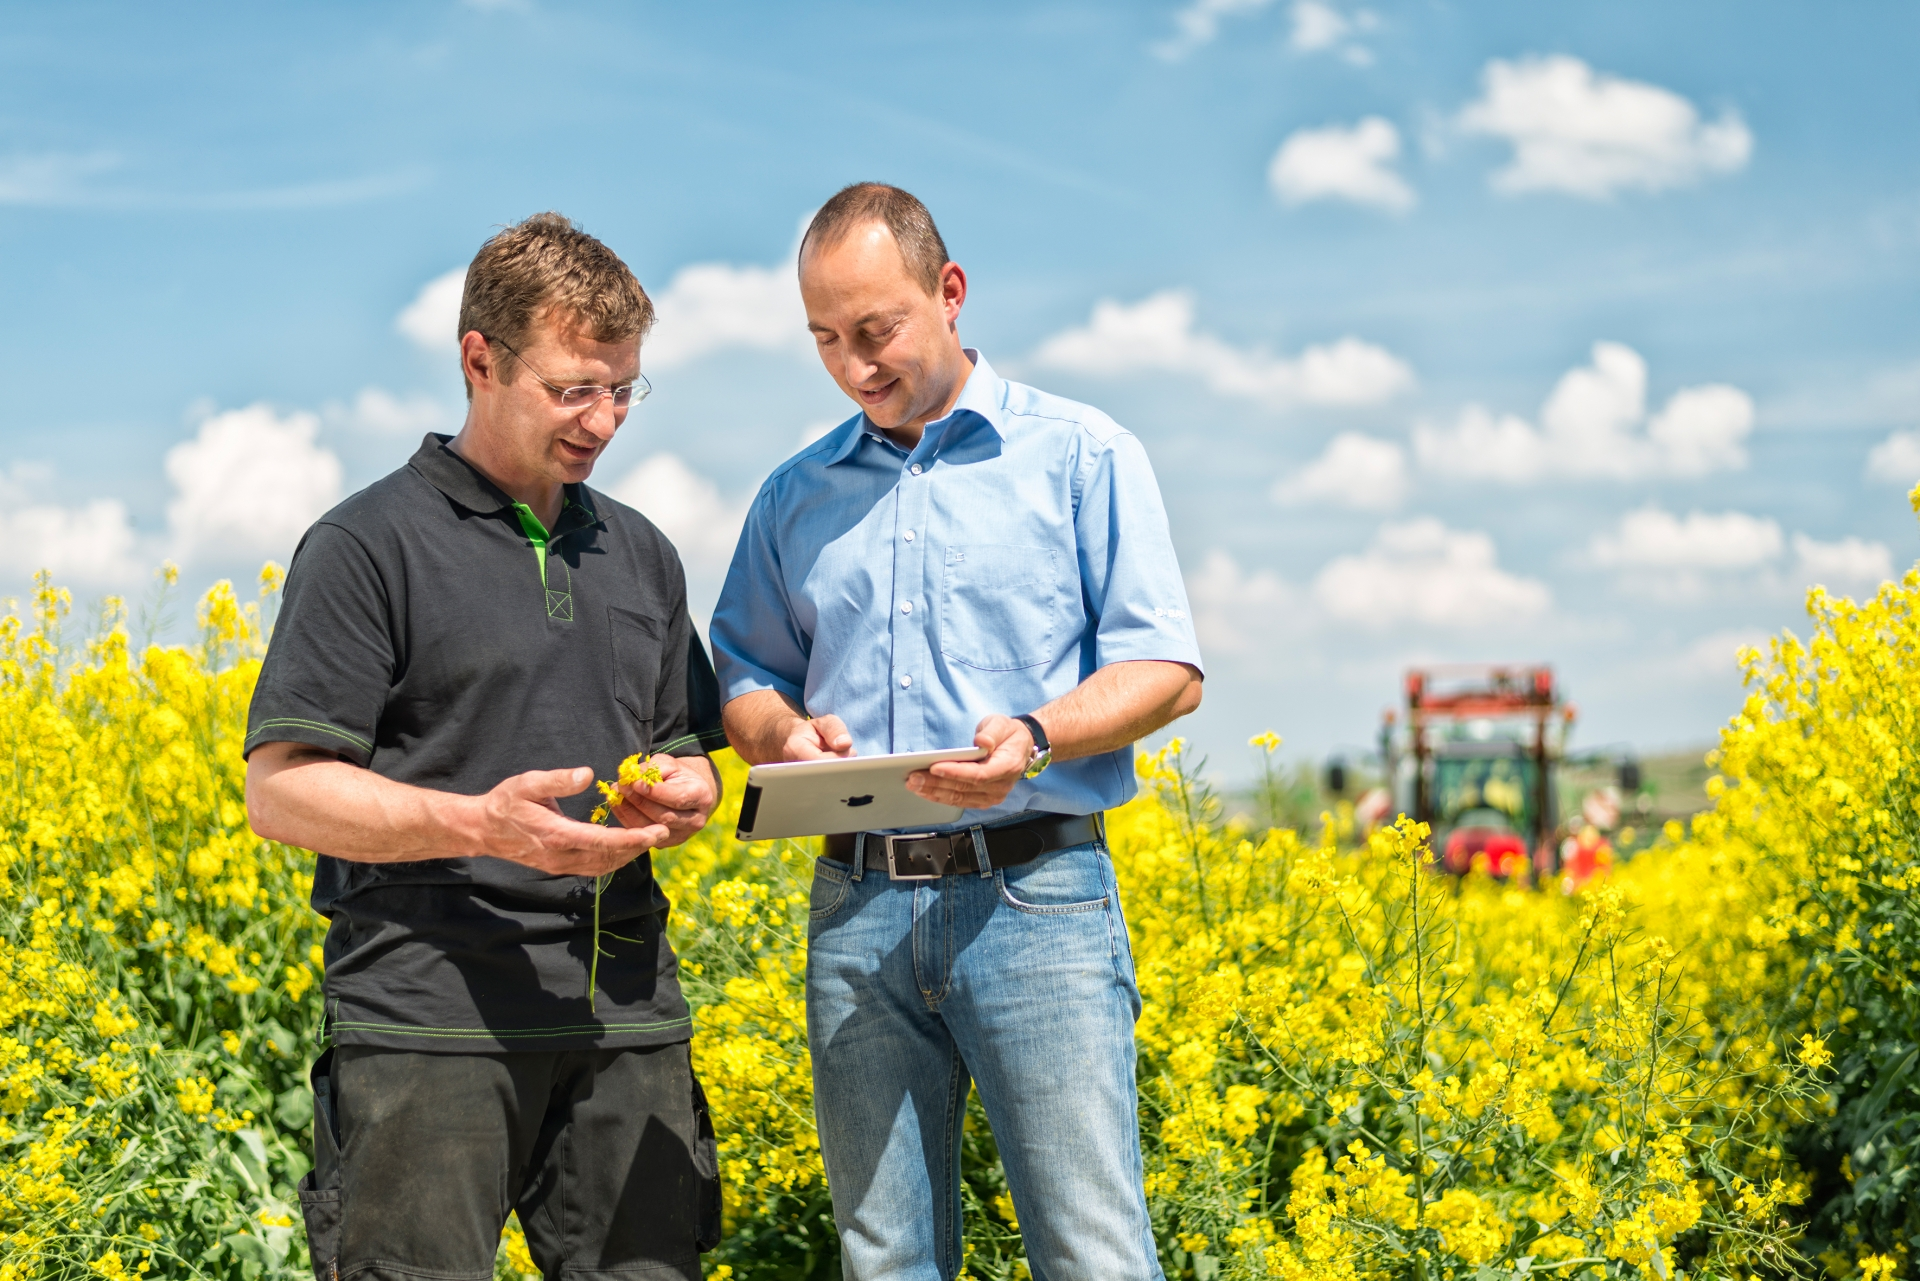 BASF's focused approach boosts agricultural innovation by 25 per cent